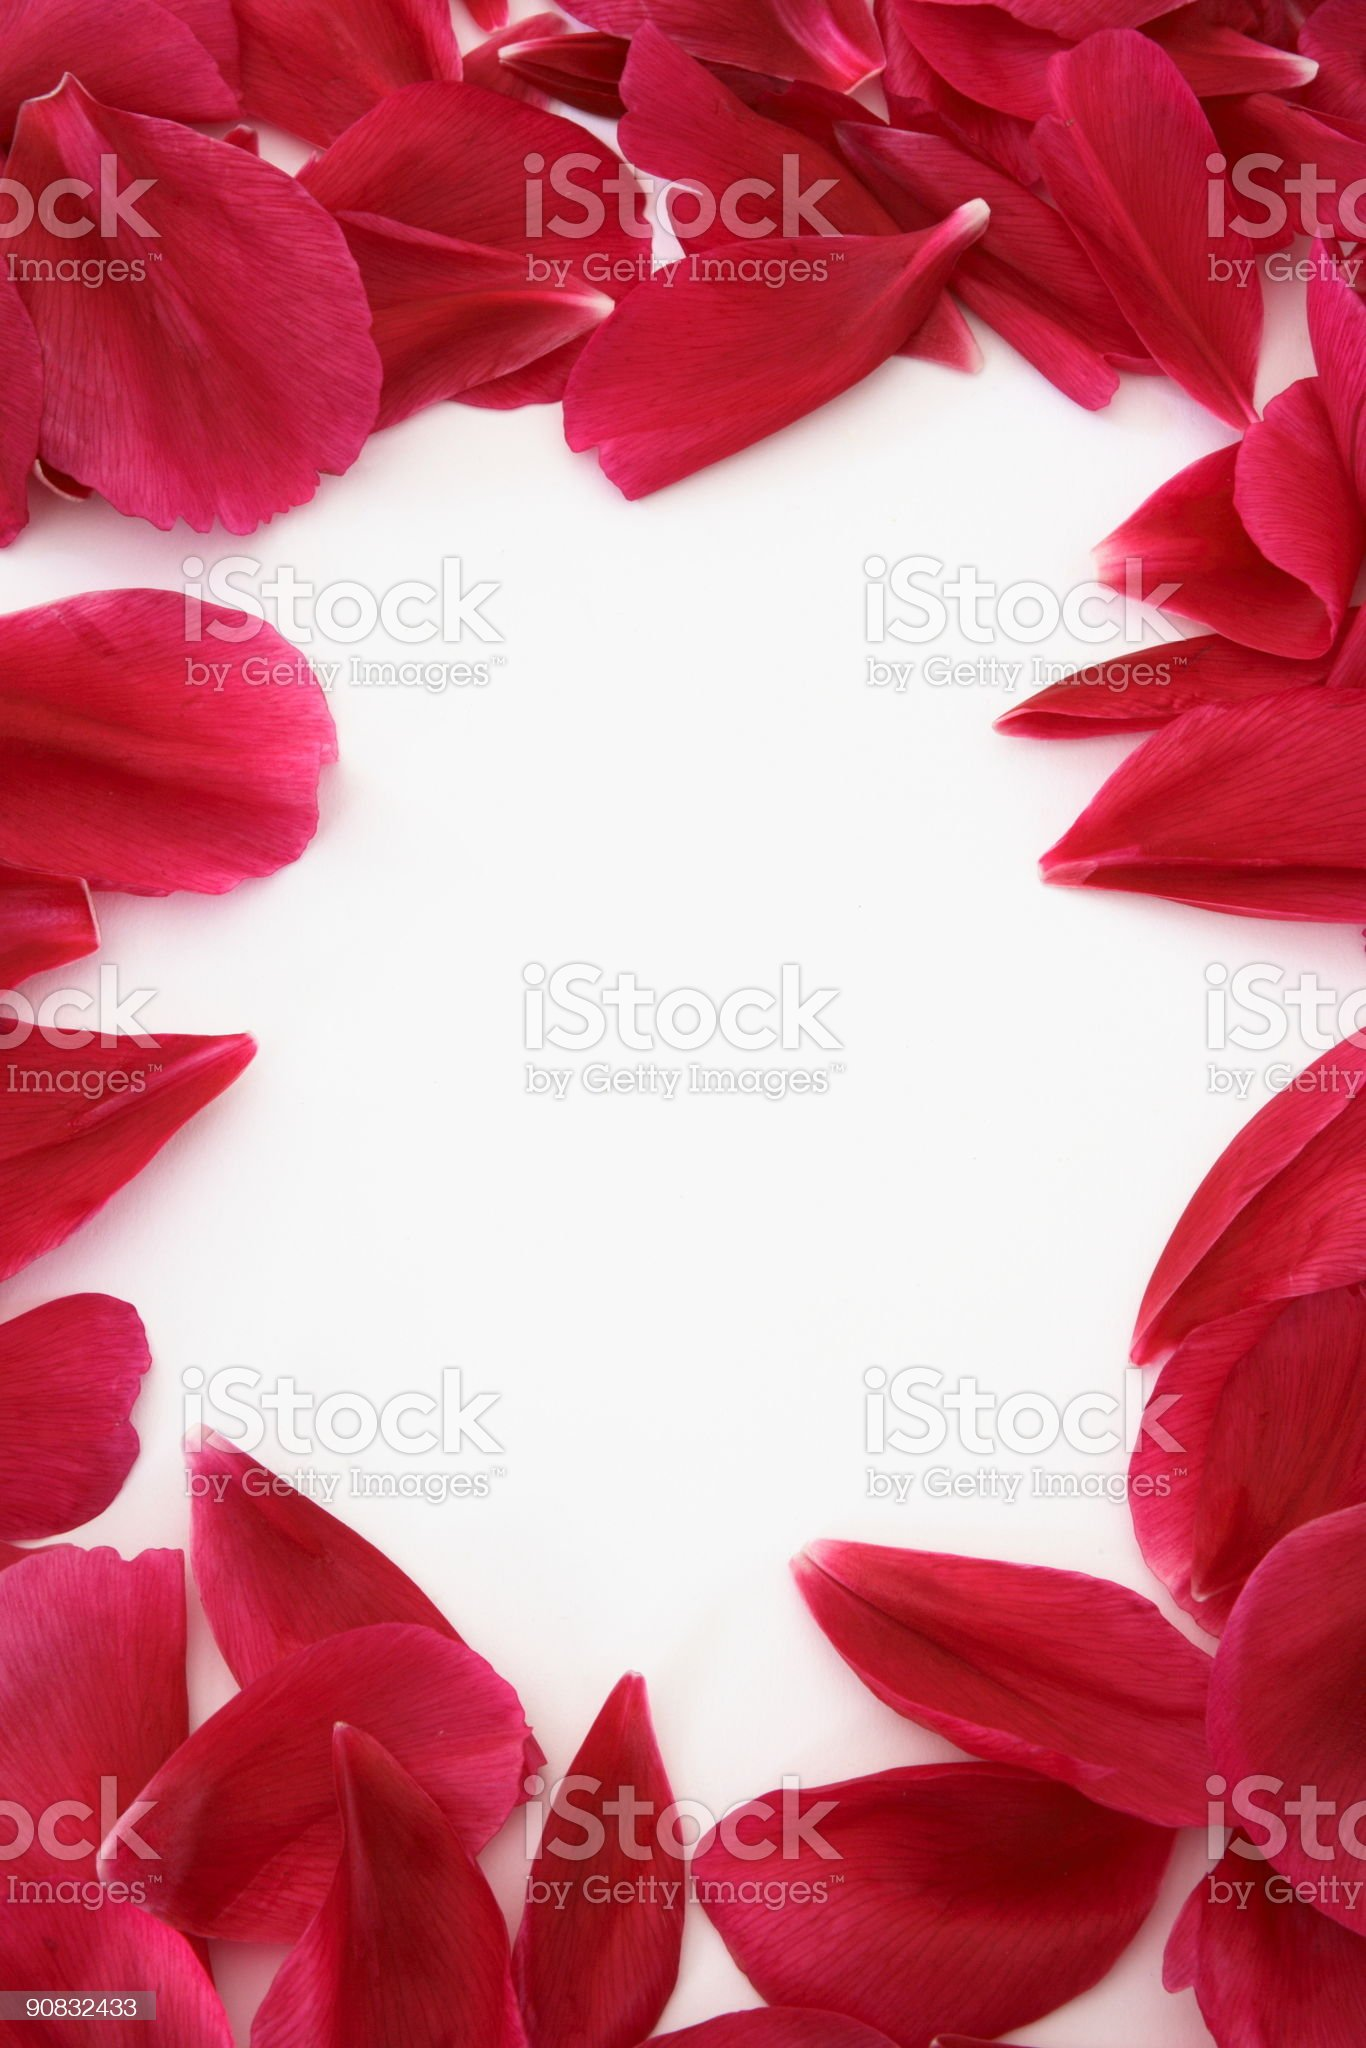 Petal frame royalty-free stock photo